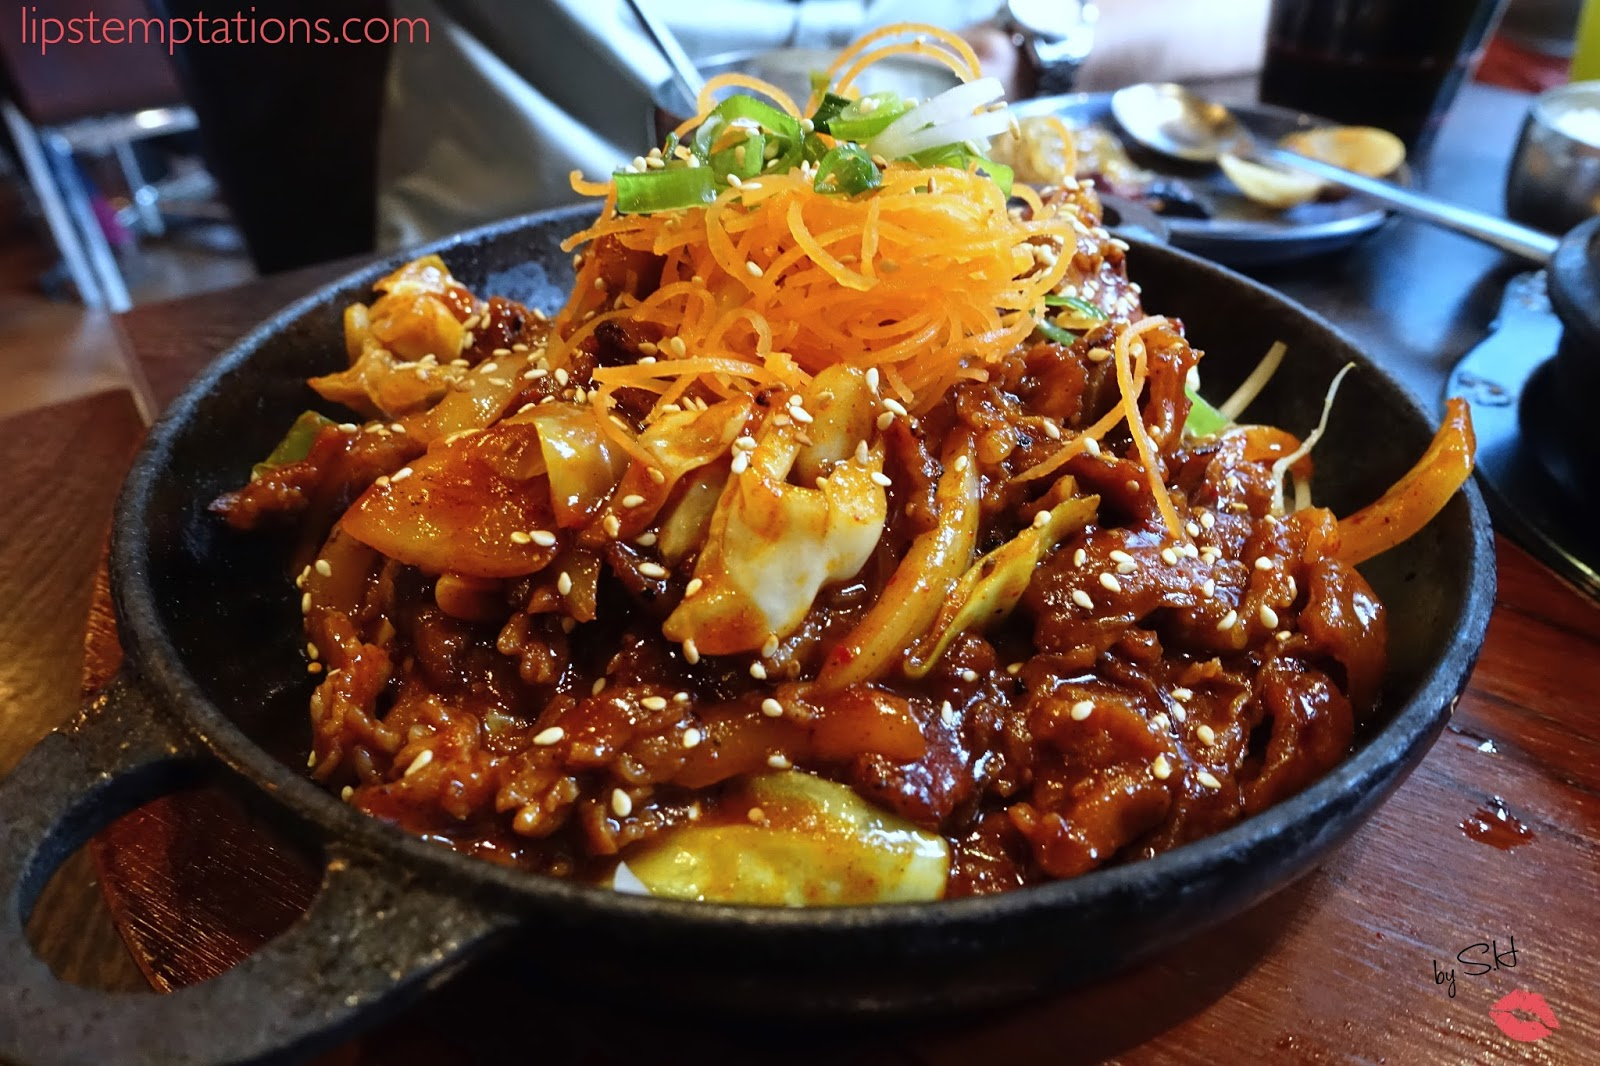 L A Galbi Korean Style Marinated Beef Short Ribs Bbq Grilled Served On A Sizzling Plate 16 This Is My Favourite Dish At Big Mama It Was Delicious